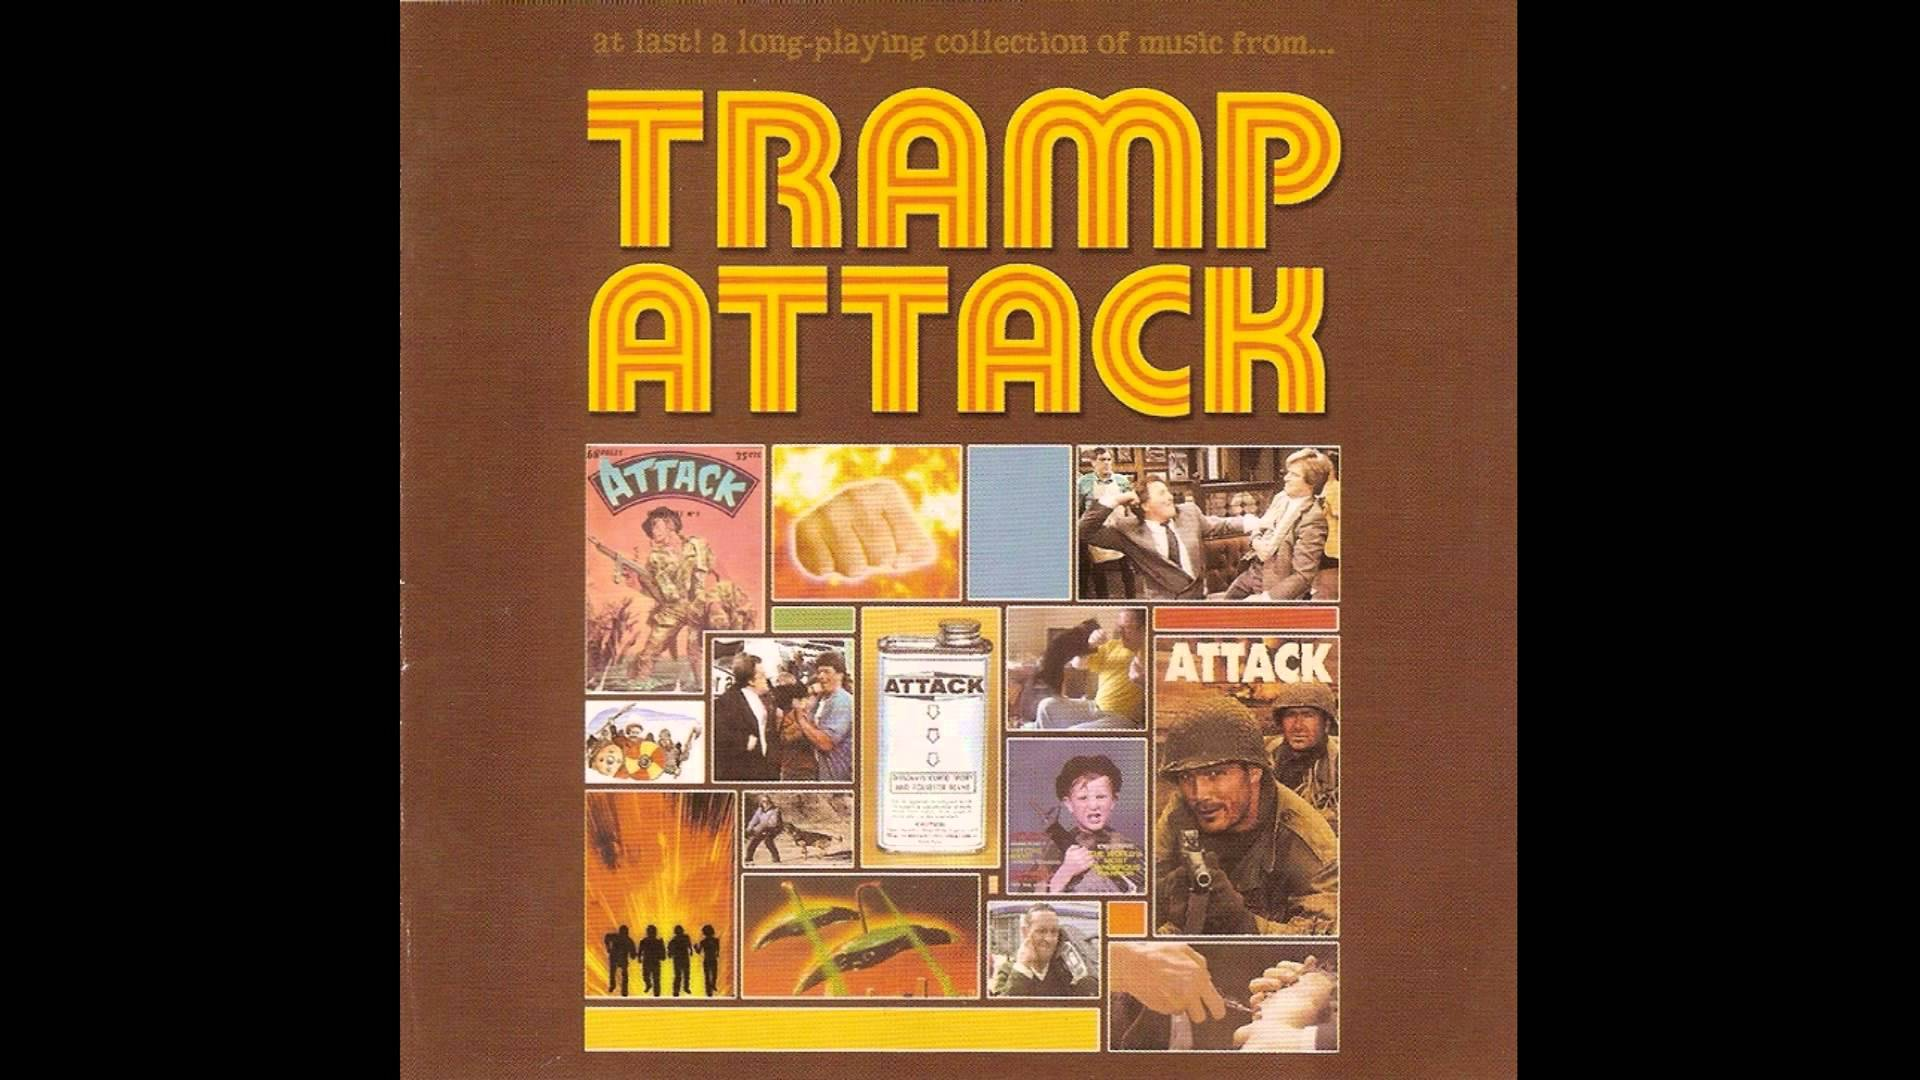 Tramp Attack Liverpool